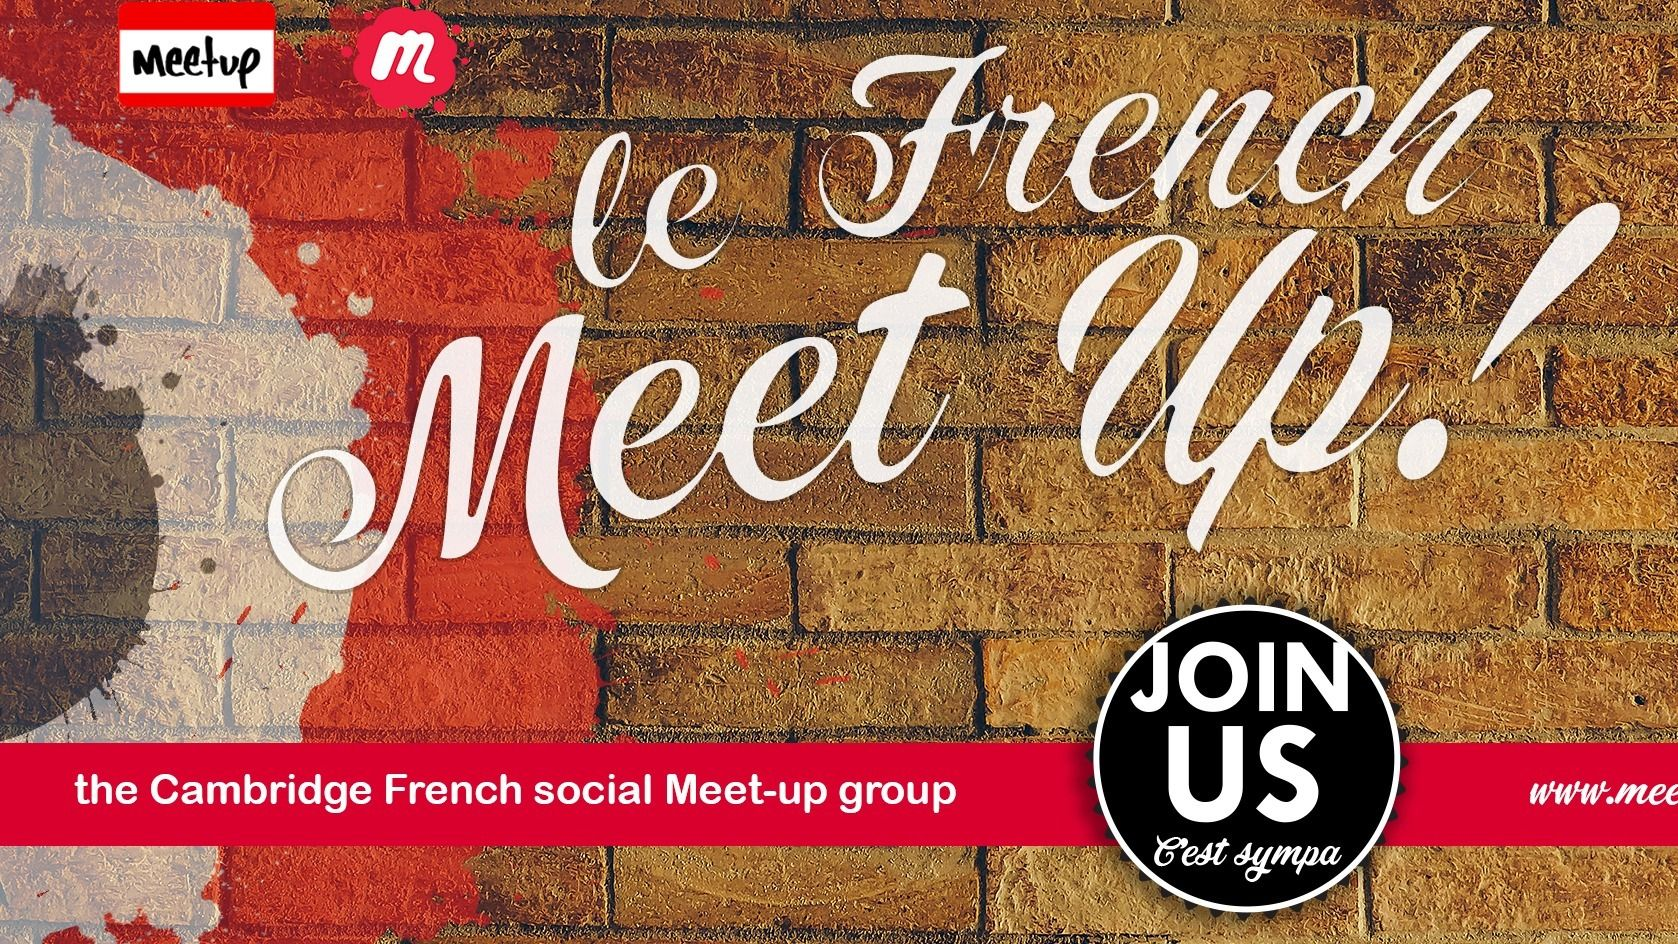 The Cambridge French social meetup group